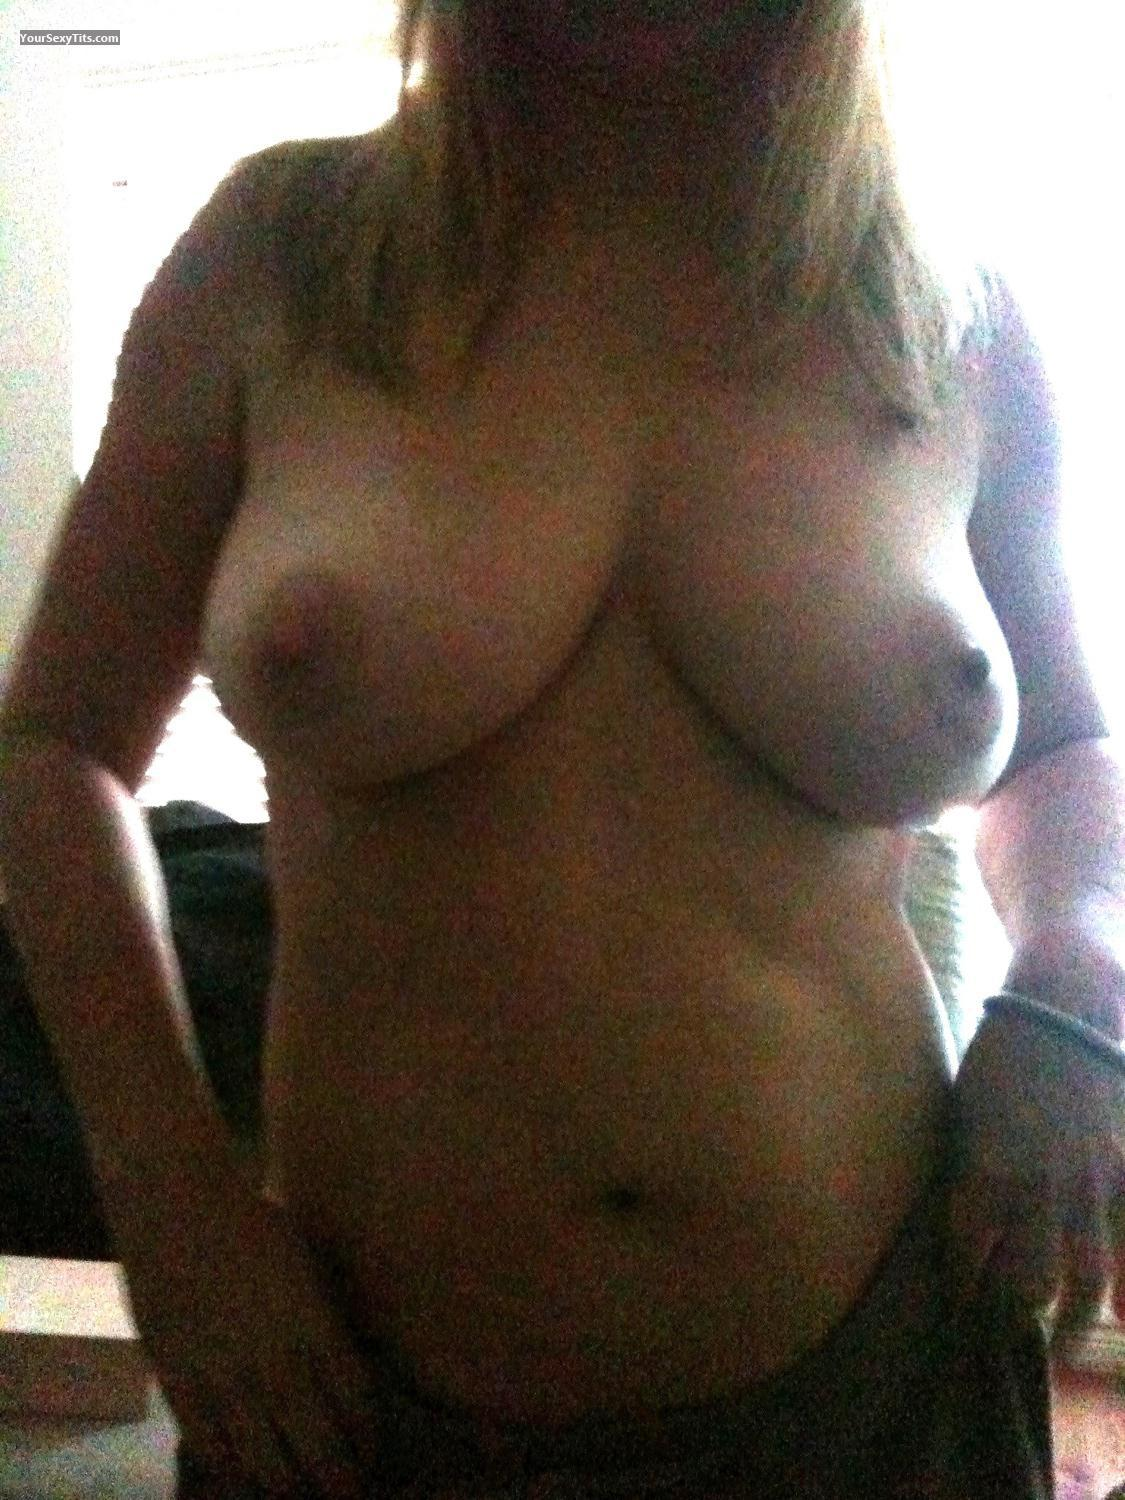 Tit Flash: Very Big Tits By IPhone - Natural52 from United States